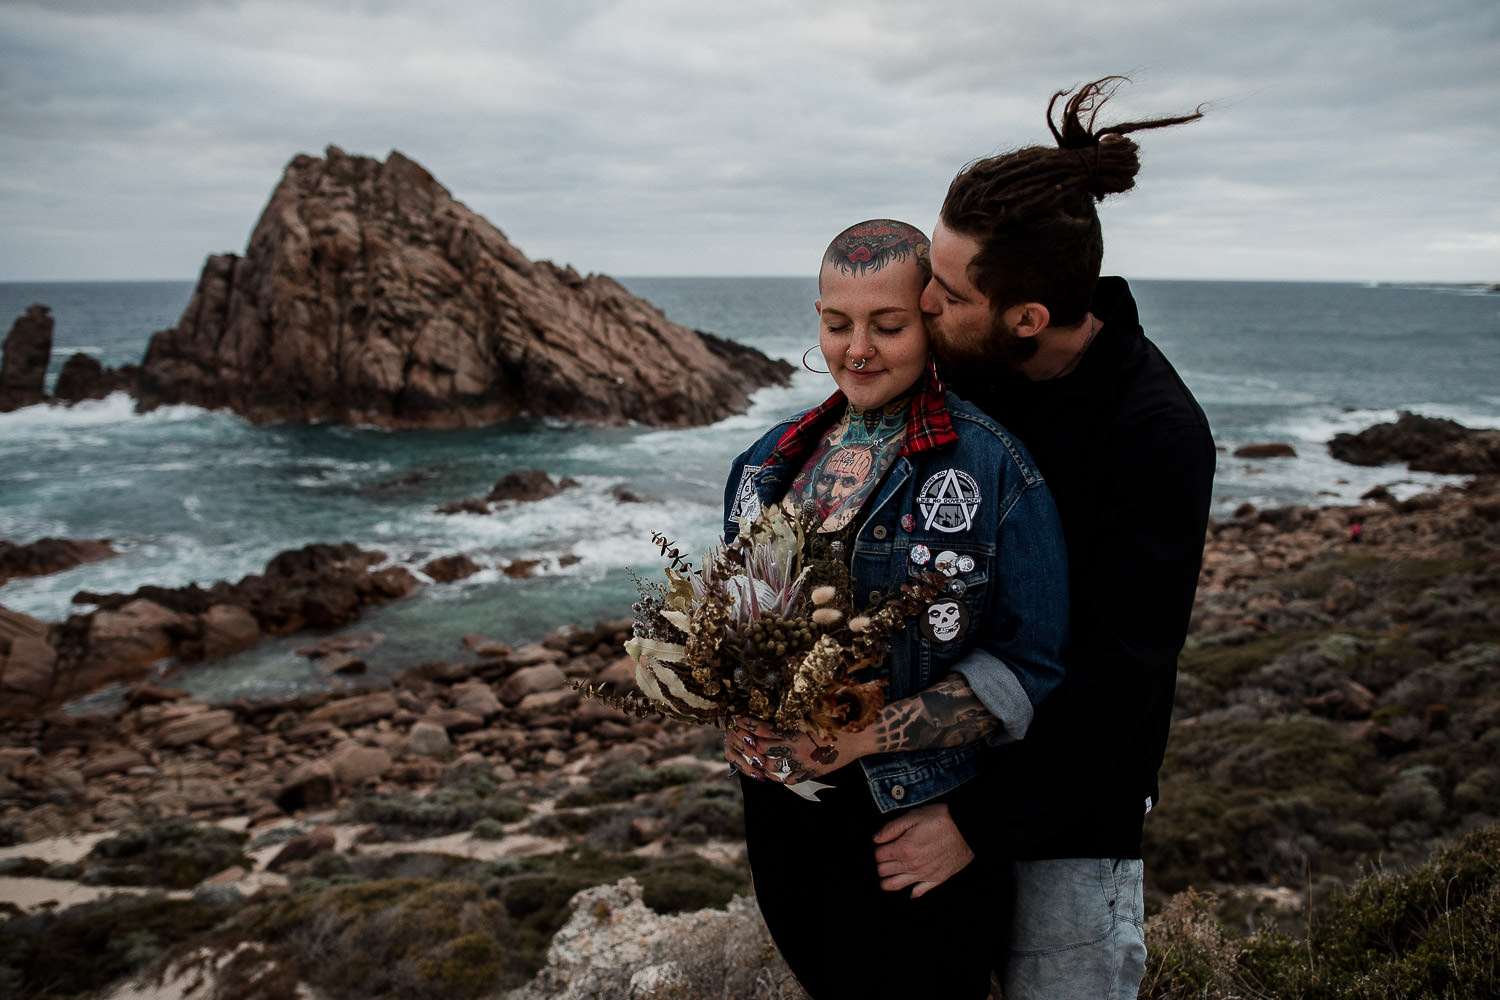 20181130-183901-1X9A5247-Sugarloaf-Rock-Maddy-Kyle-Surprise-Proposal